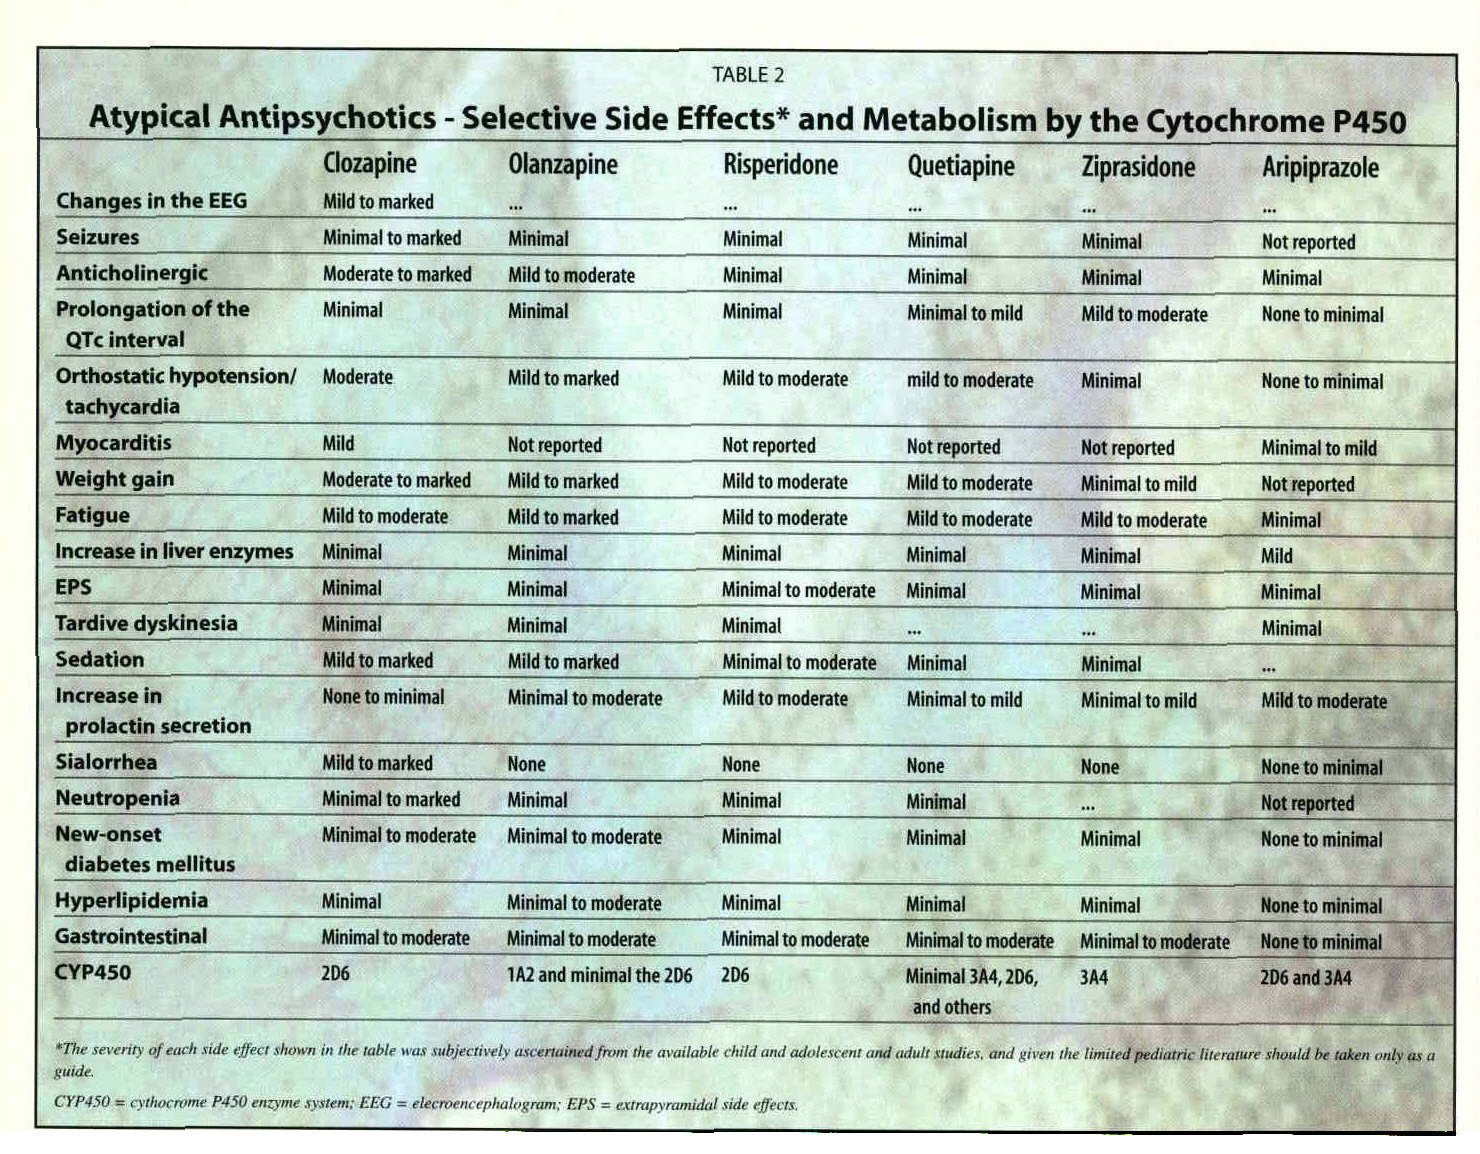 TABLE 2Atypical Antipsychotics - Selective Side Effects- and Metabolism by the Cytochrome P450